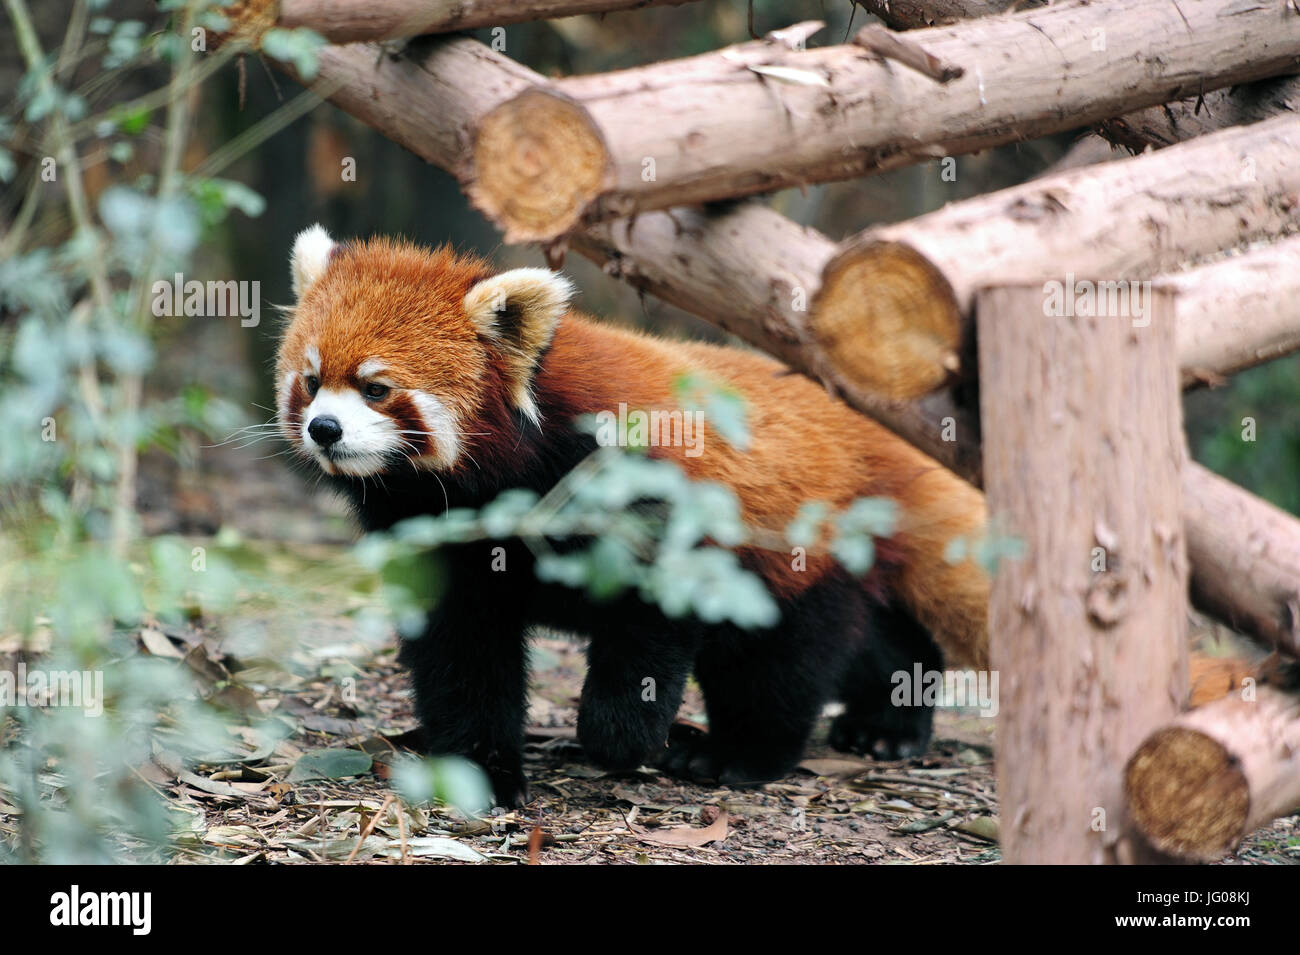 Chengdu, China. 10th Apr, 2017. The red panda (also called lesser panda, and the red bear-cat) is a rare species - Stock Image